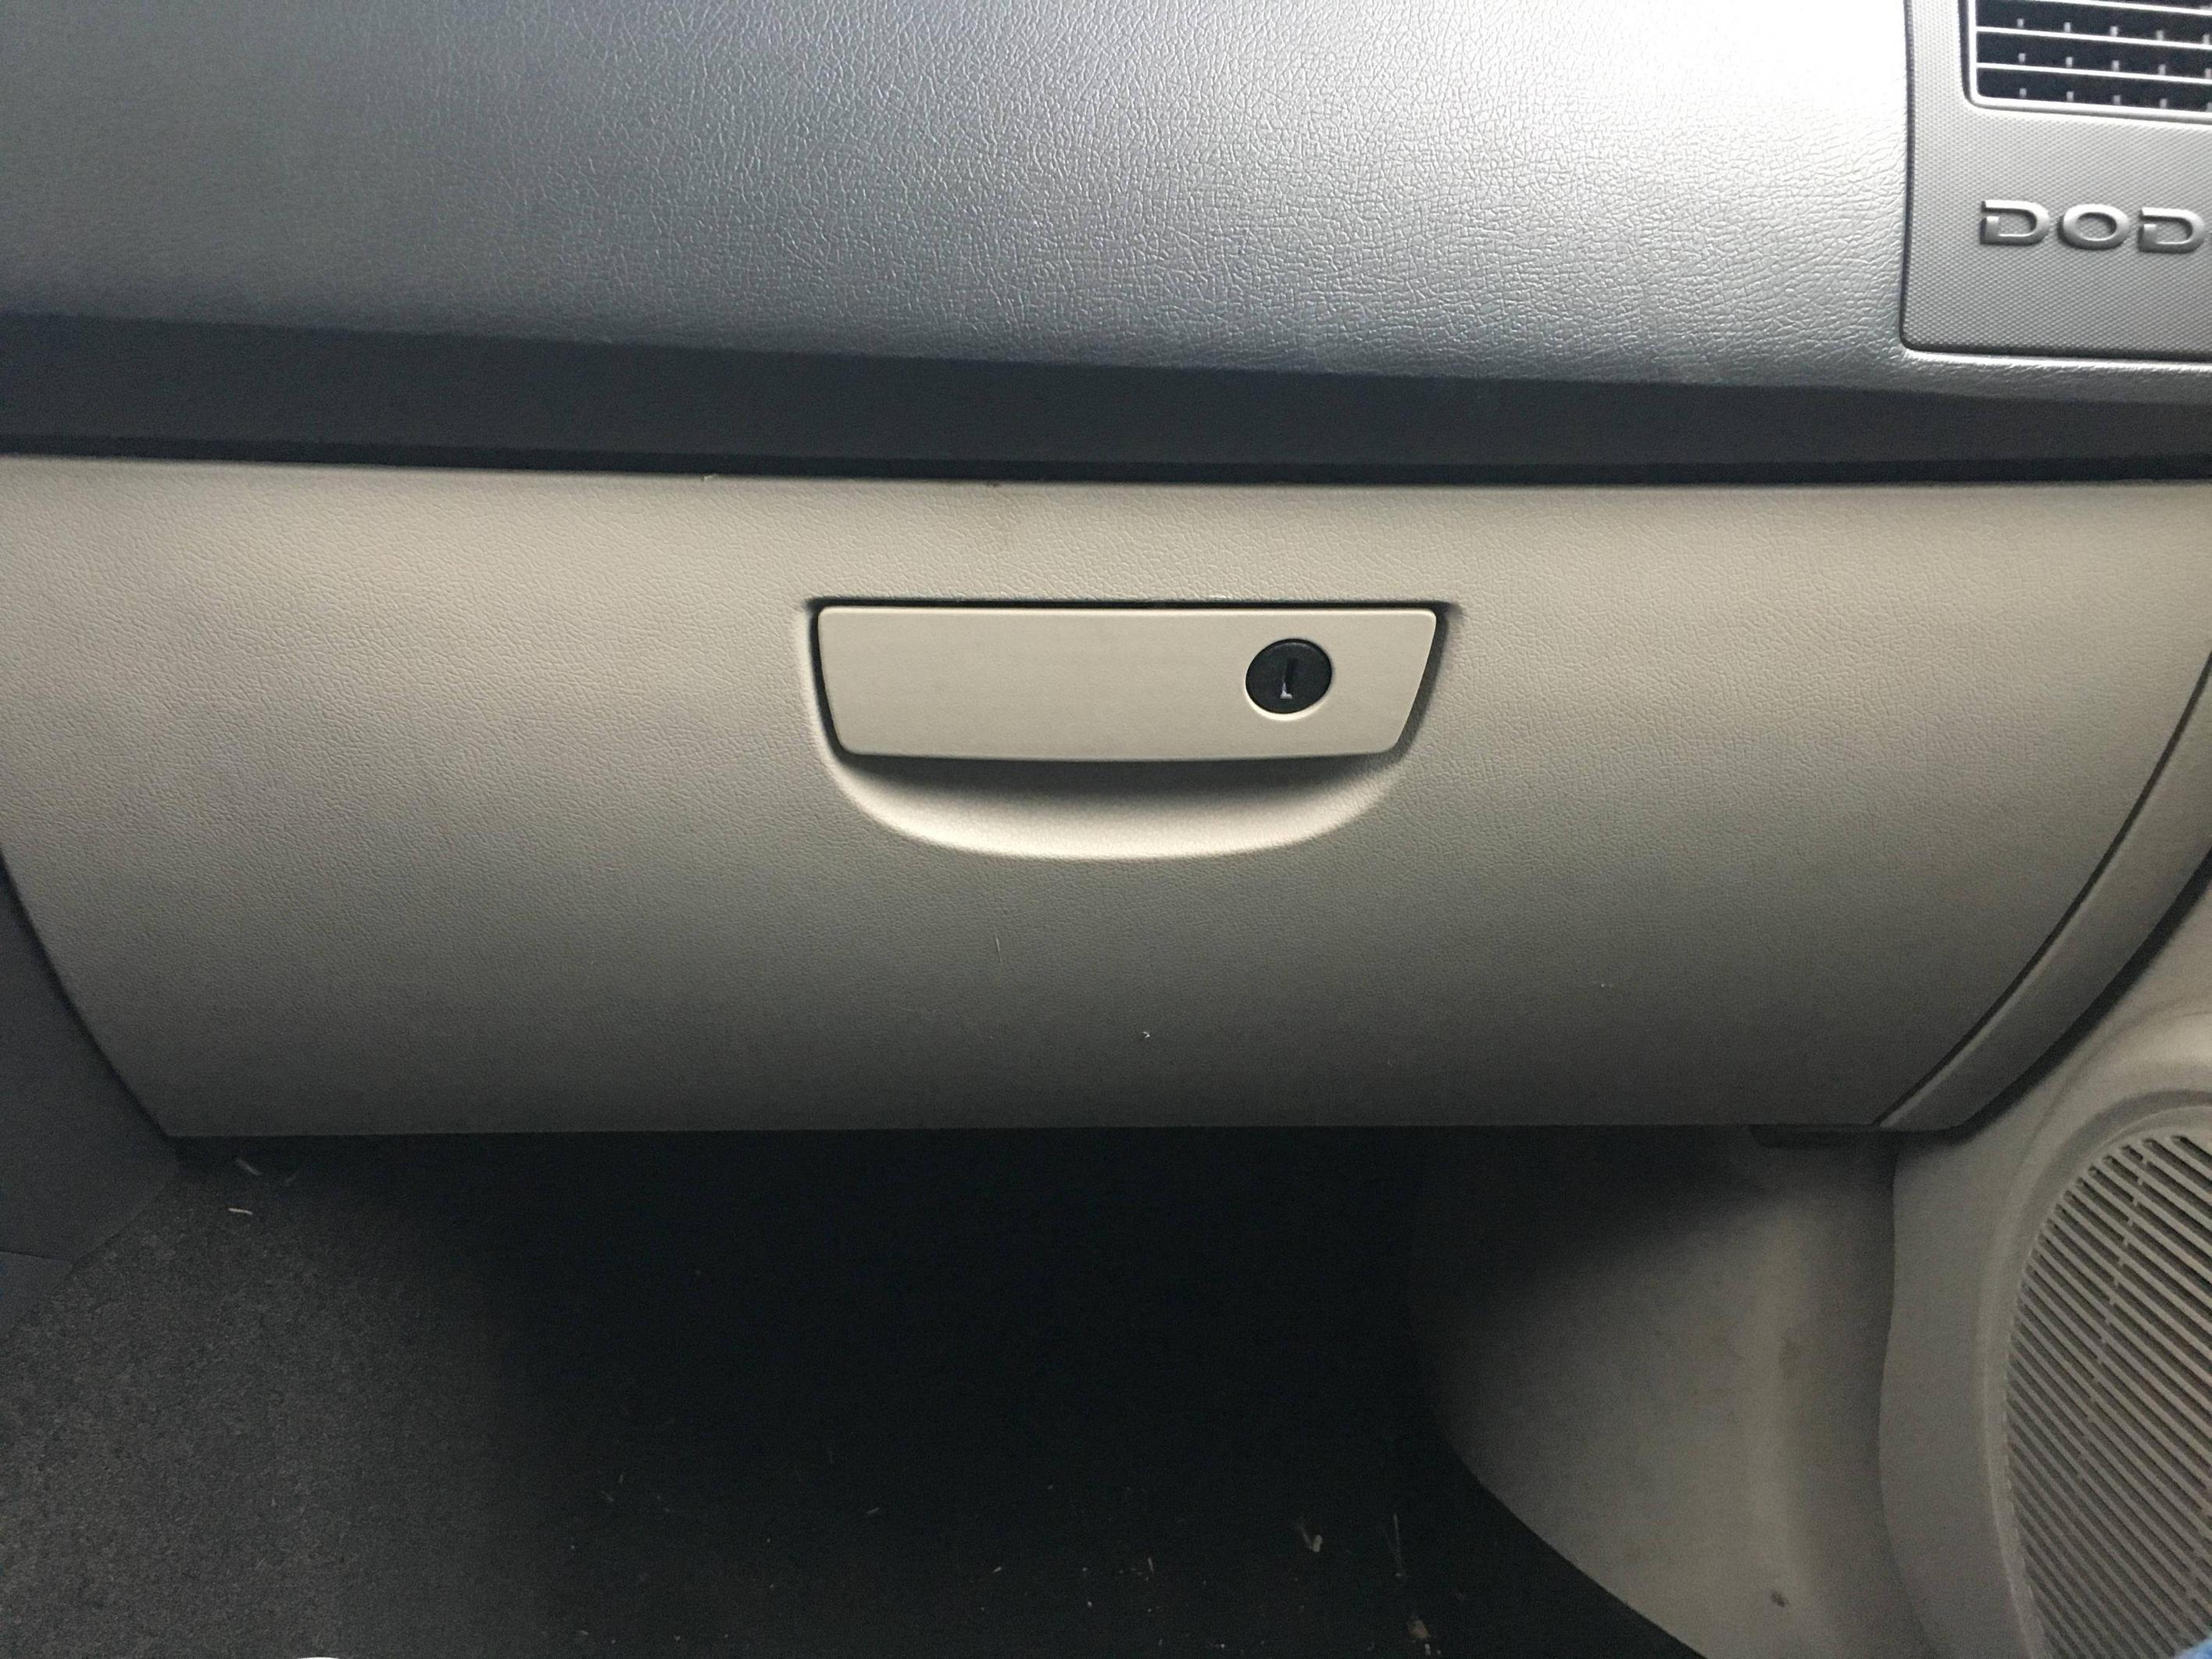 2006 Ford Focus Fuse Box Diagram Dodge 06 Charger Broken Glove Box Latch Motor Vehicle